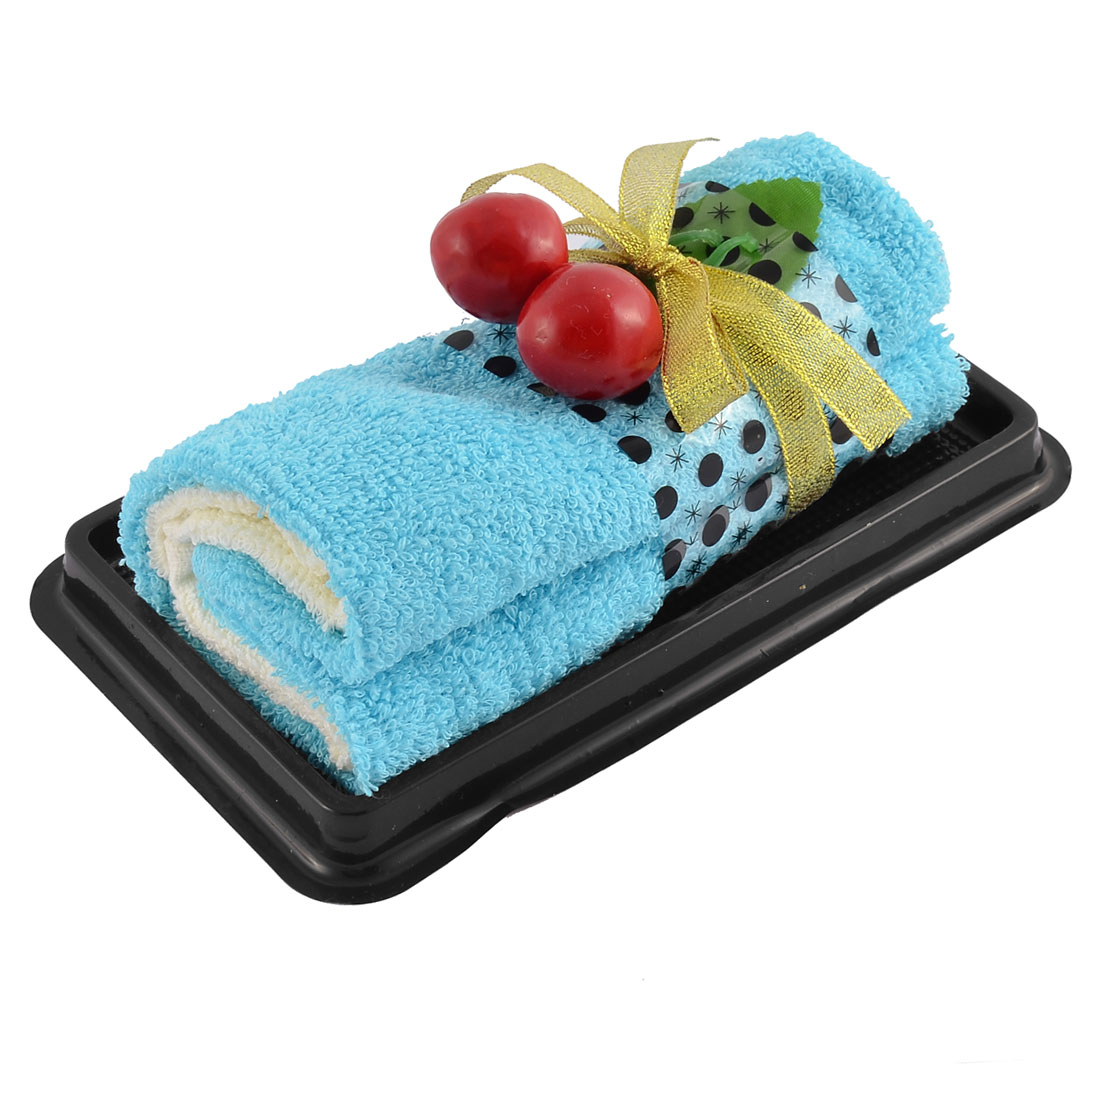 Roll Cake Towel Fake Cherry Decor Detail Washrag Washcloth Facecloth Gift Blue